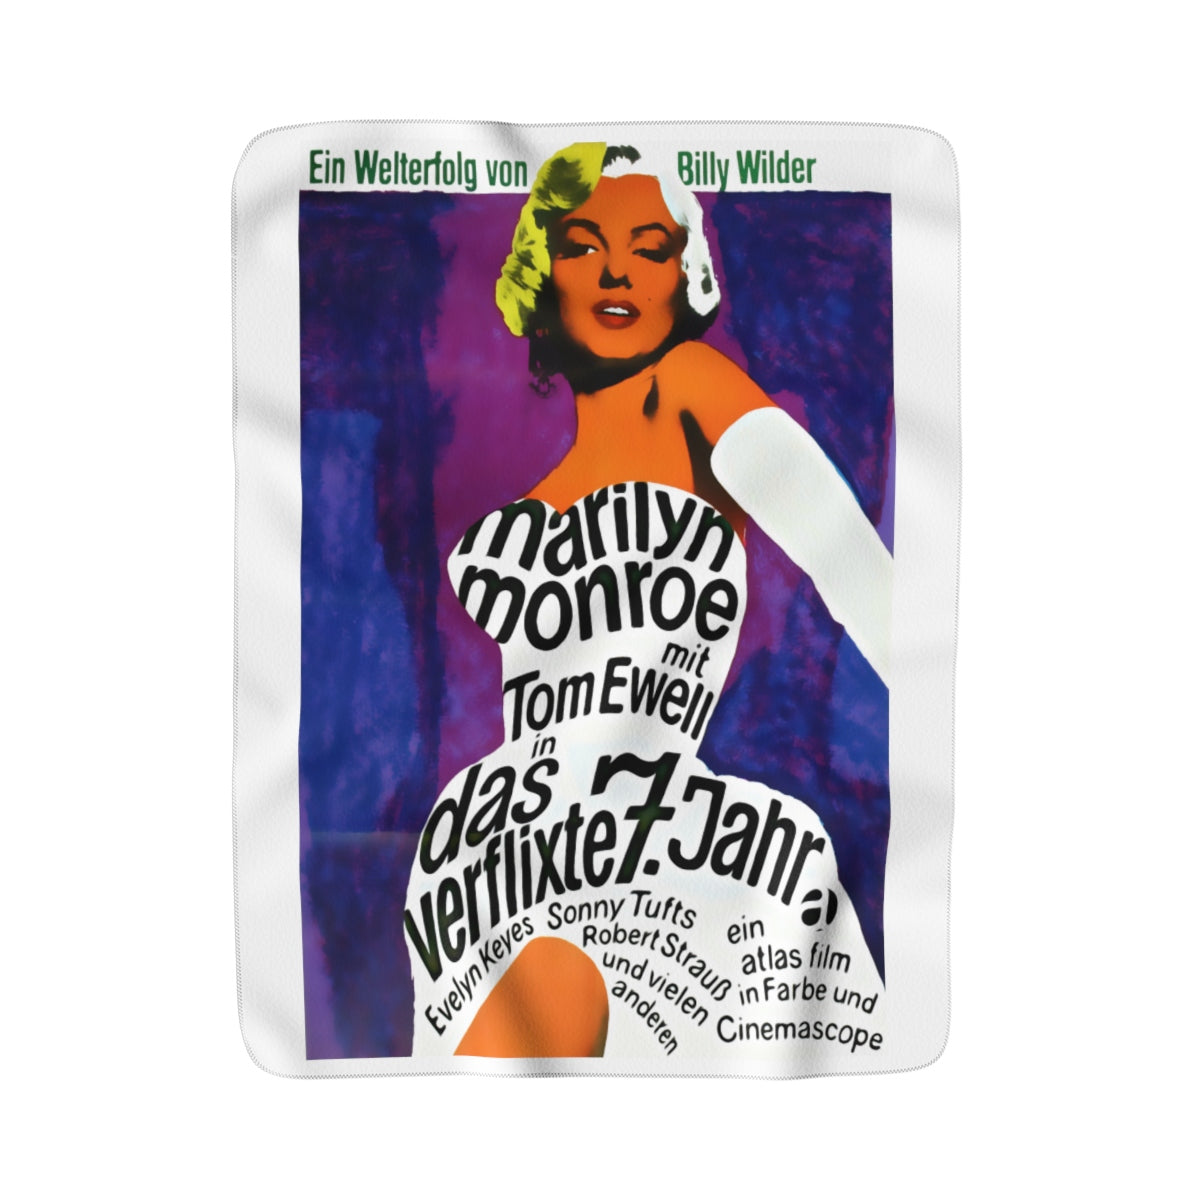 Marilyn Monroe Vintage Poster 7 Year Itch Premium Sherpa Fleece Blanket